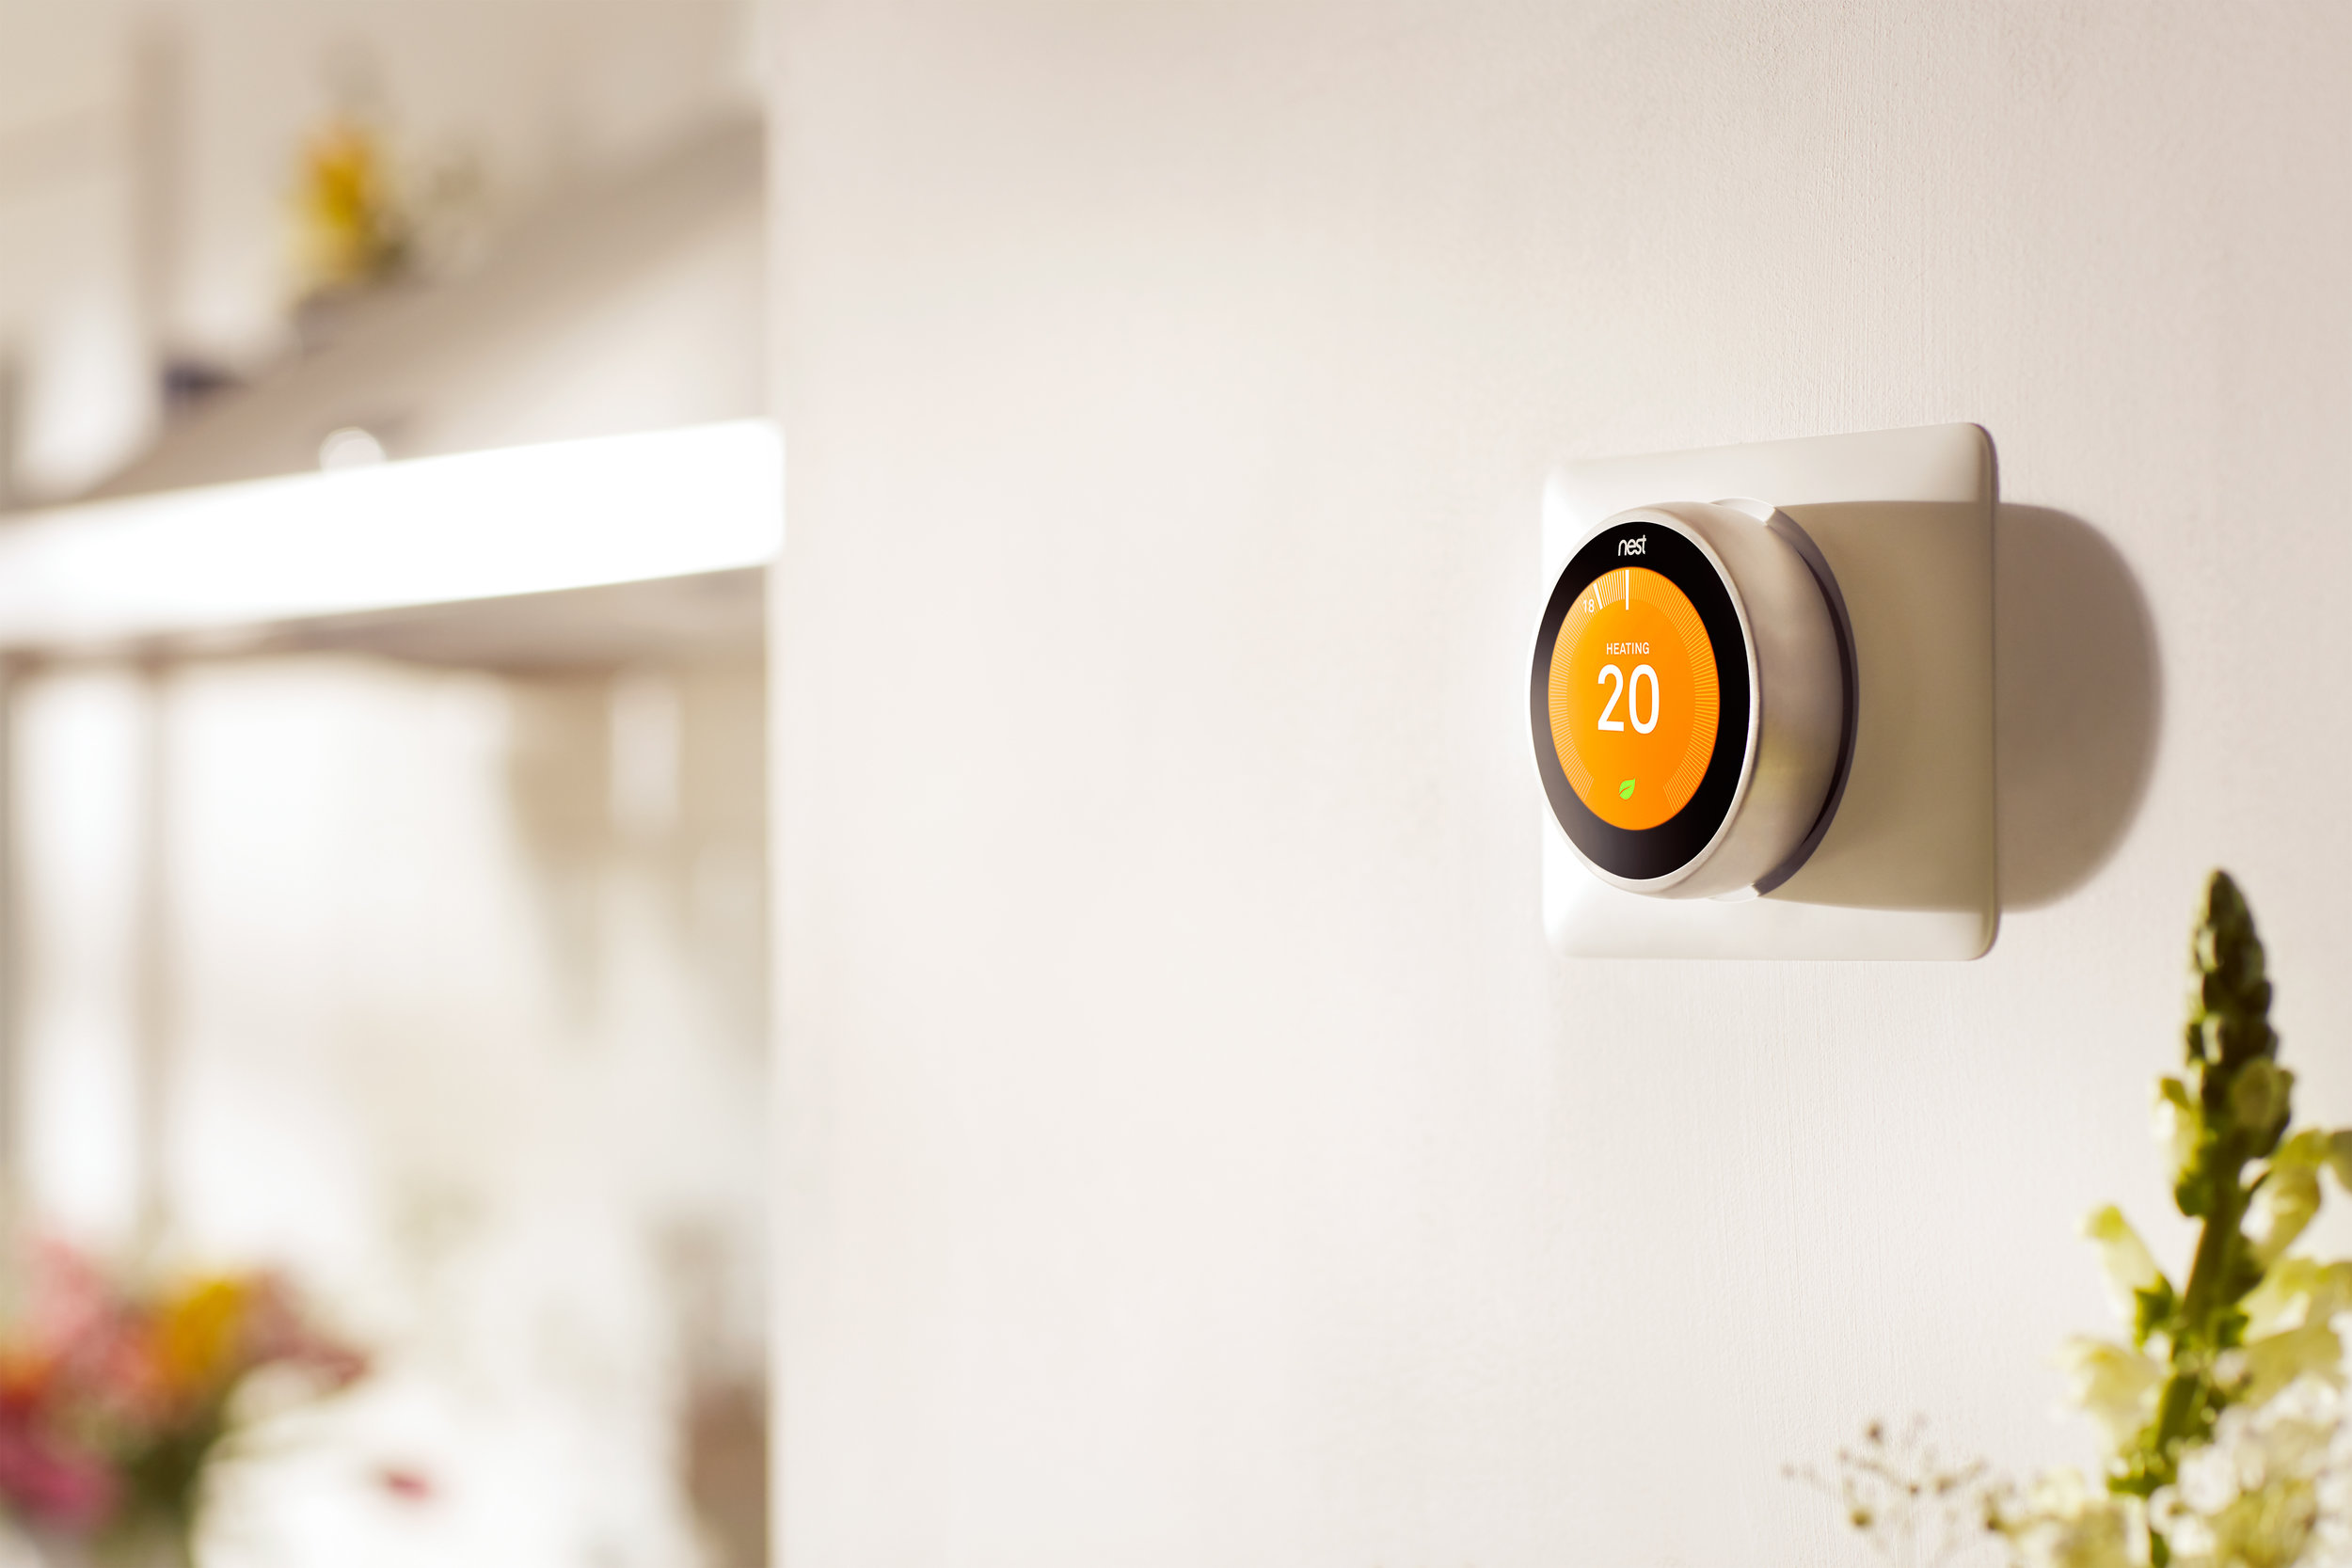 Smart Heating Control Nest thermostat kitchen wall orange display twenty degrees eco mode